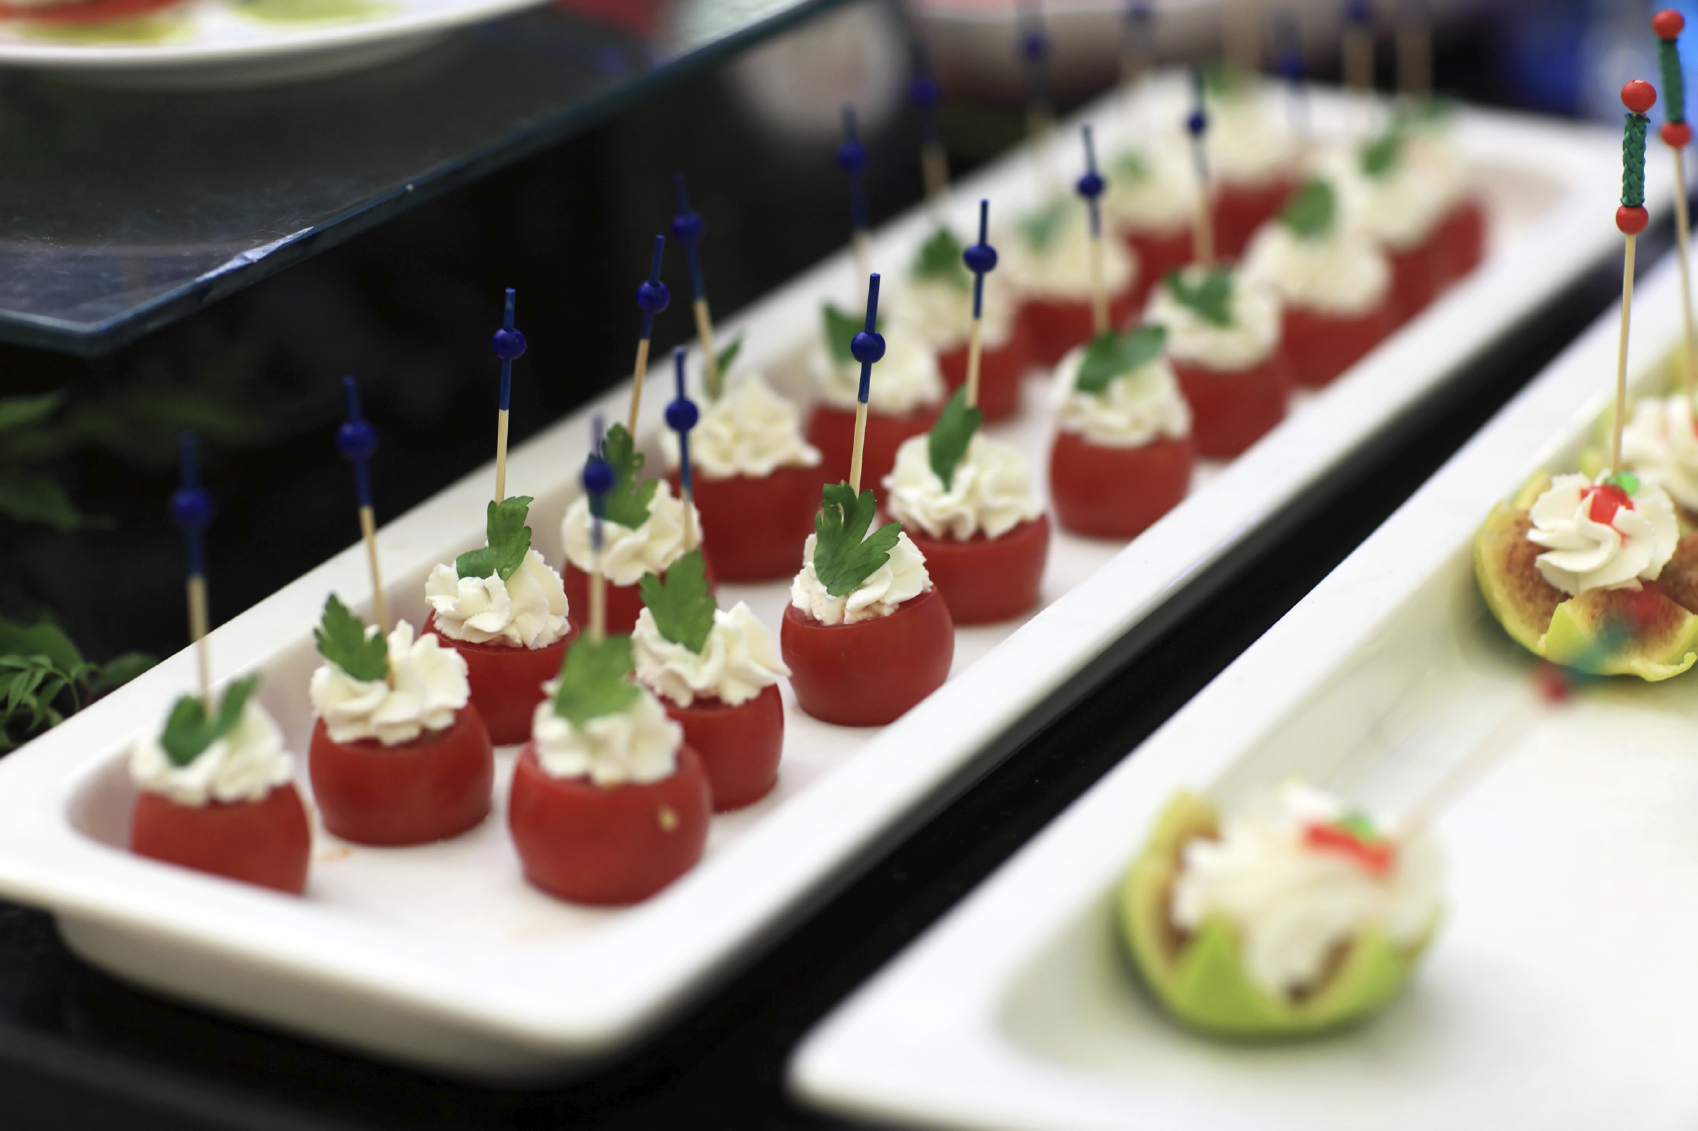 8 quick finger foods and canap s littlerock for Canape ideas for party